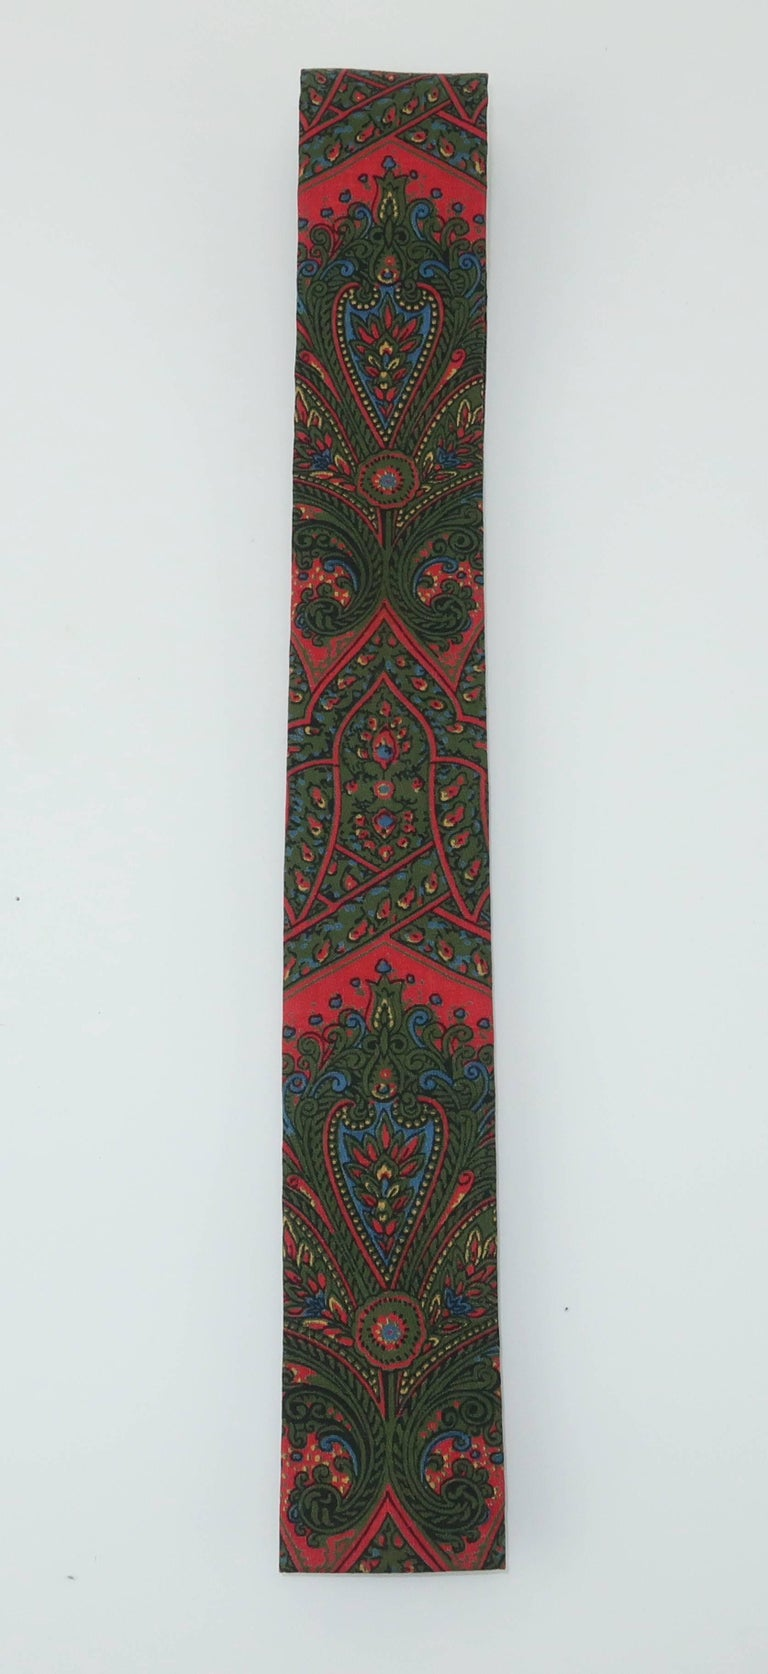 The novelty necktie can be the perfect accessory for a gentleman with both a sense of humor and style.  This 1960's skinny square tie is by Taylor, Ludlow Vermont.  It is fabricated from a cotton blend paisley fabric incorporating a dark orangey